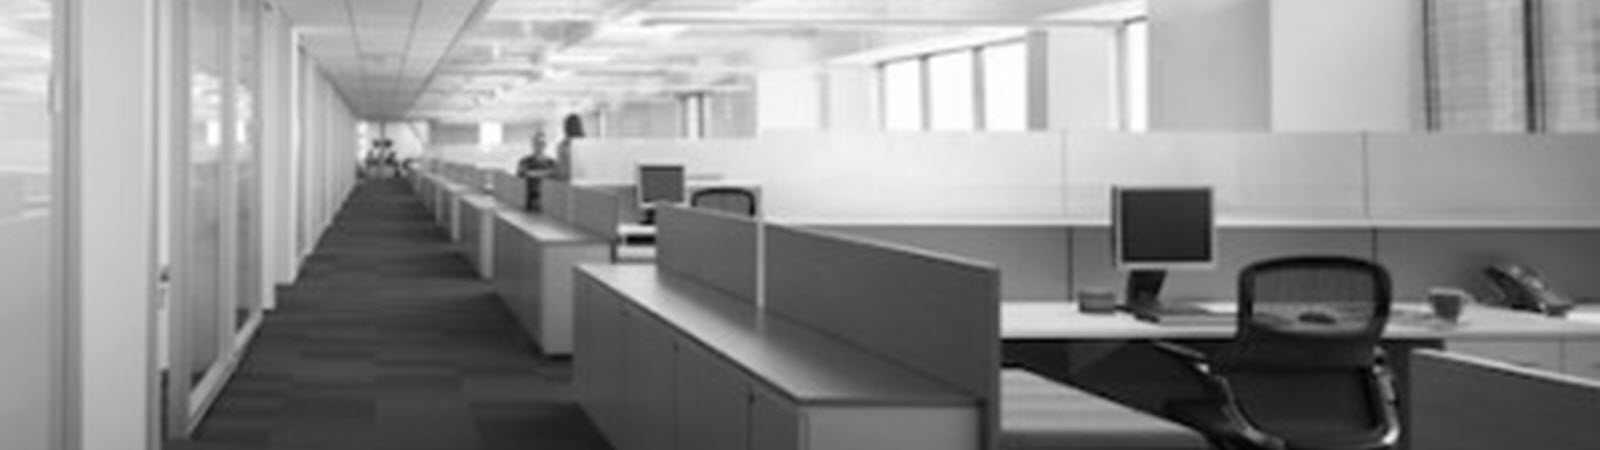 Office Furniture Installation Company Furniture Installer St Louis Mo Professional